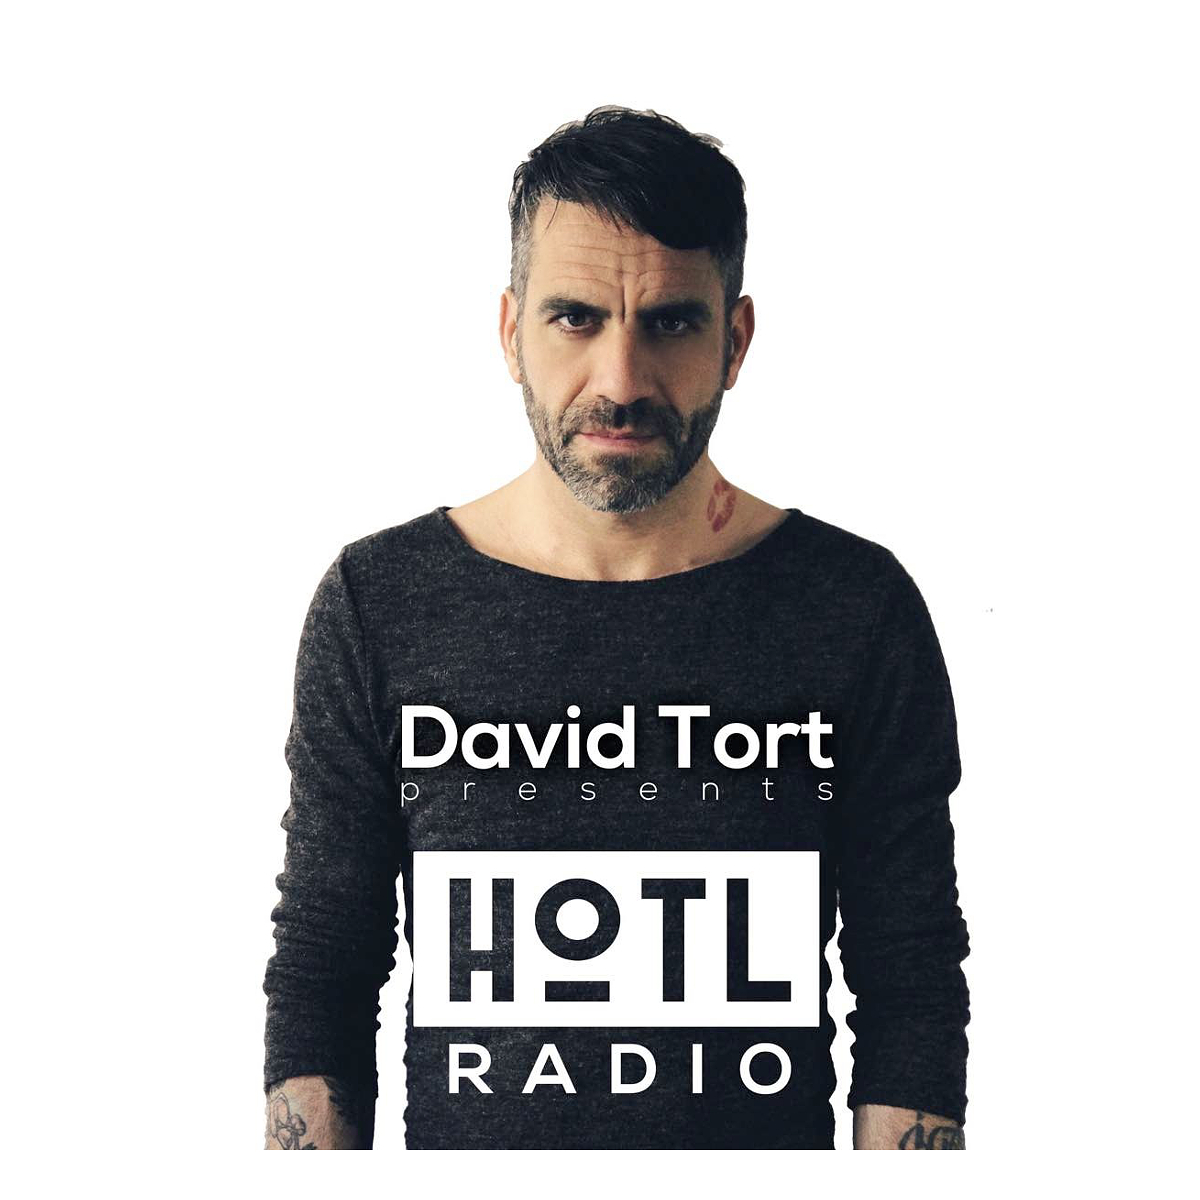 David Tort - HoTL Radio 018 (Miss Kandy Guest Mix)